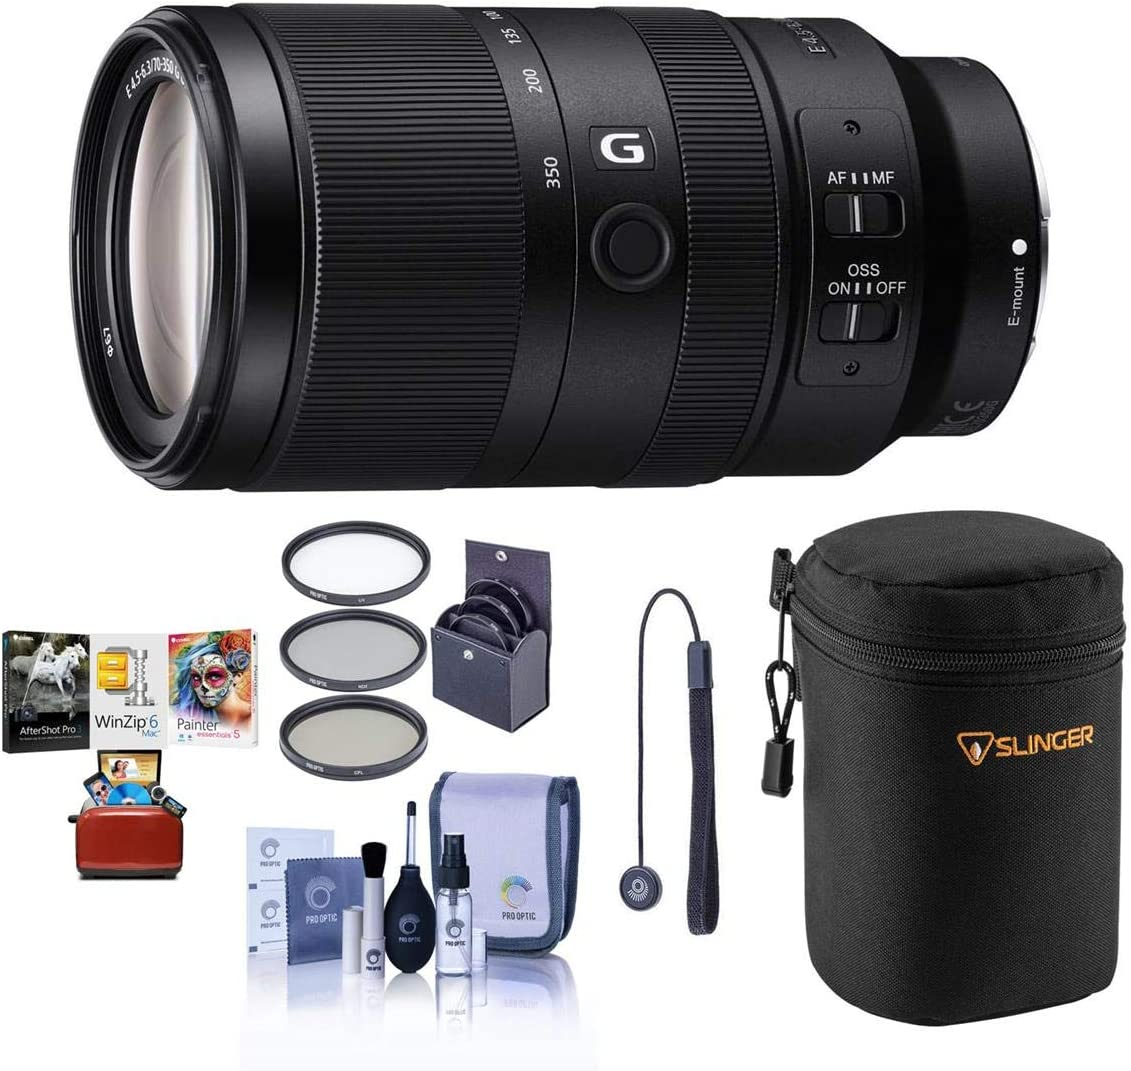 Sony E 70-350mm f/4.5-6.3 G OSS Lens - Bundle with Lens Case, 67mm Filter KIt, Capleash II, Cleaning kit, Mac Software Package